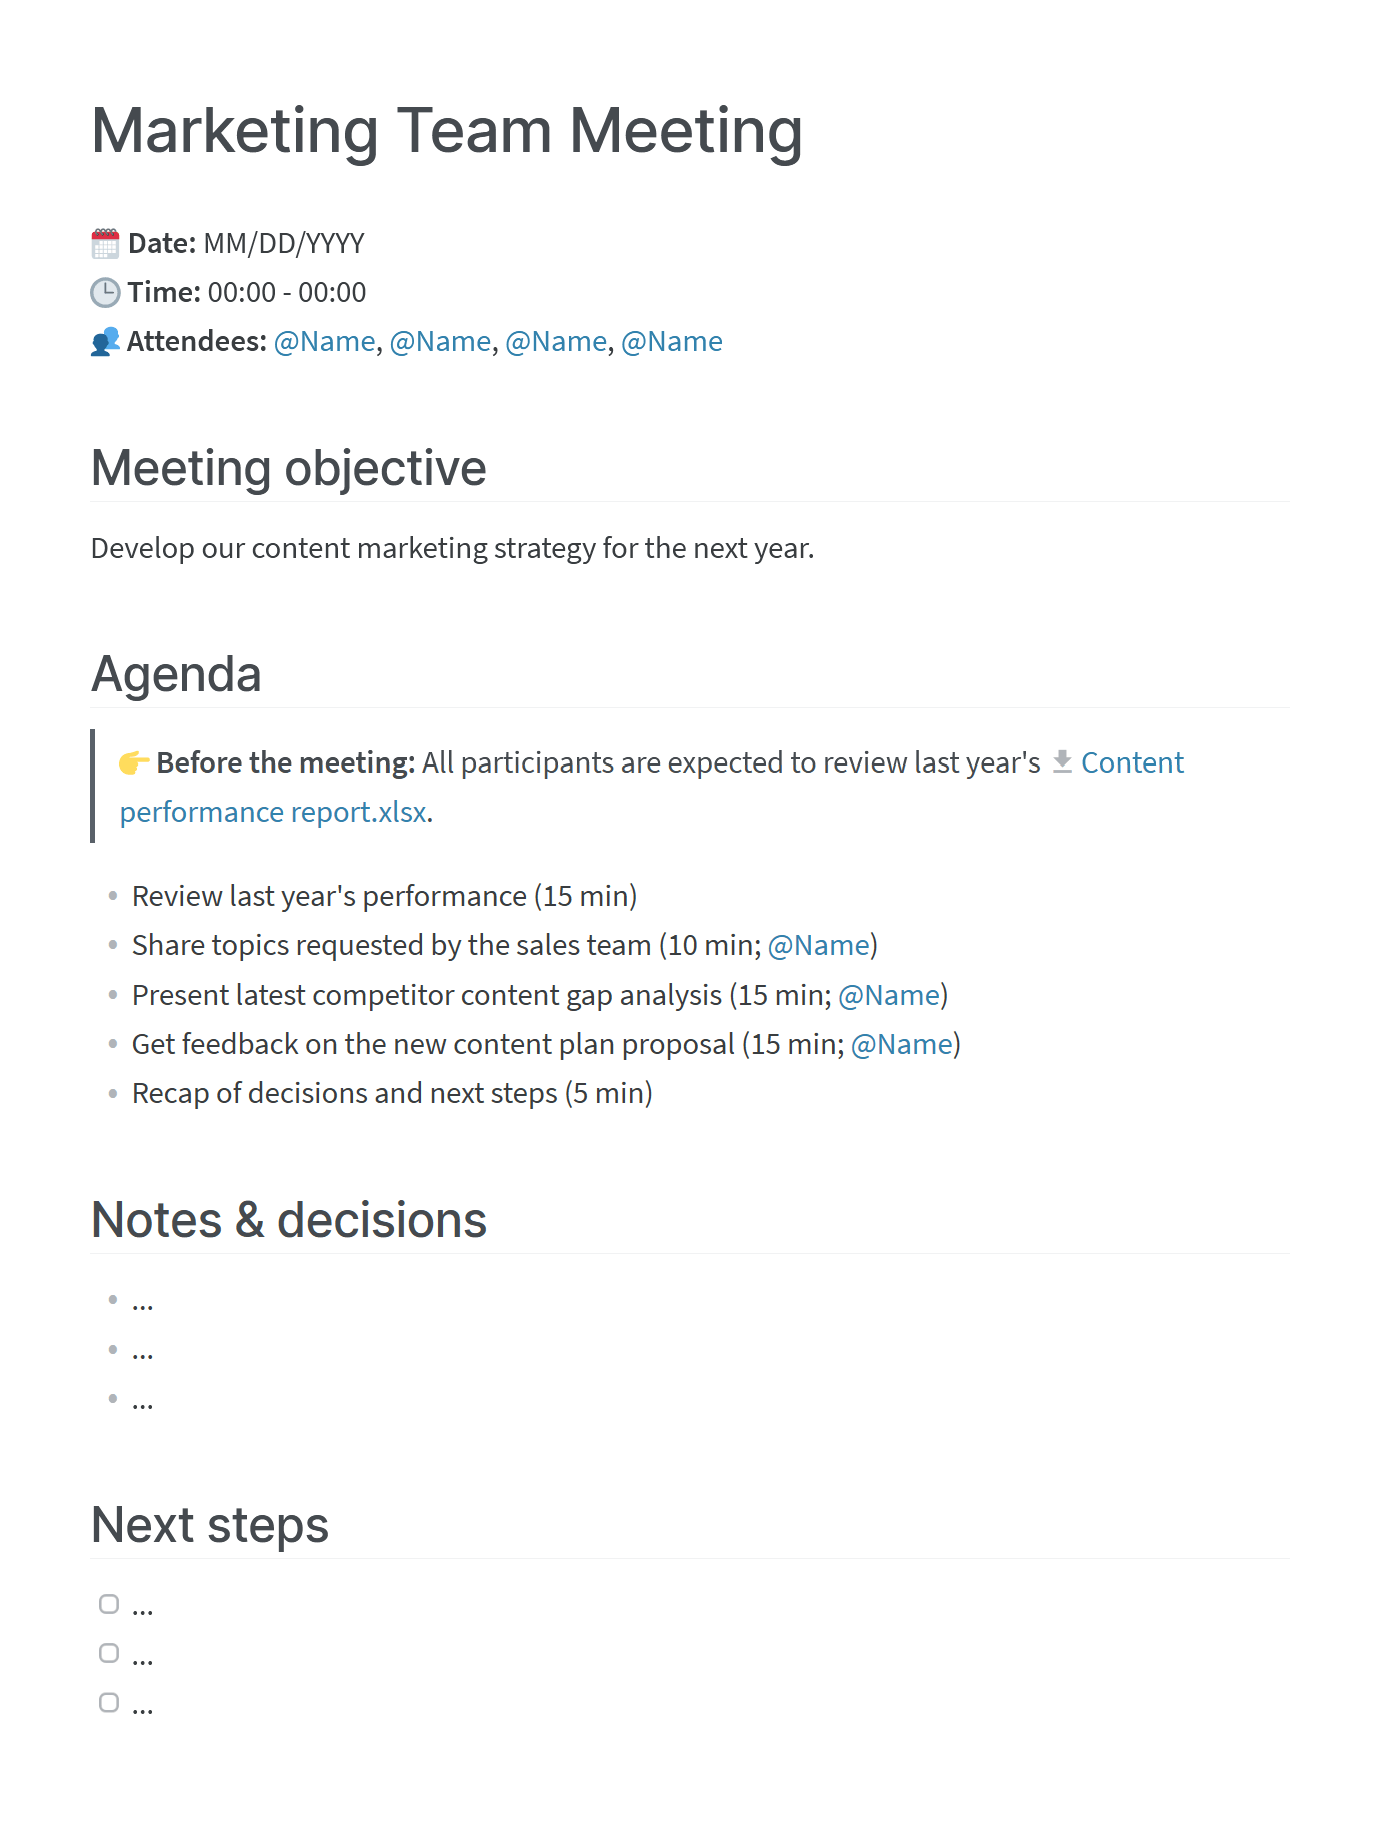 Meeting agenda templates to copy or download (google doc or word doc) — plus examples of how to use them. How To Write A Meeting Agenda Templates Examples